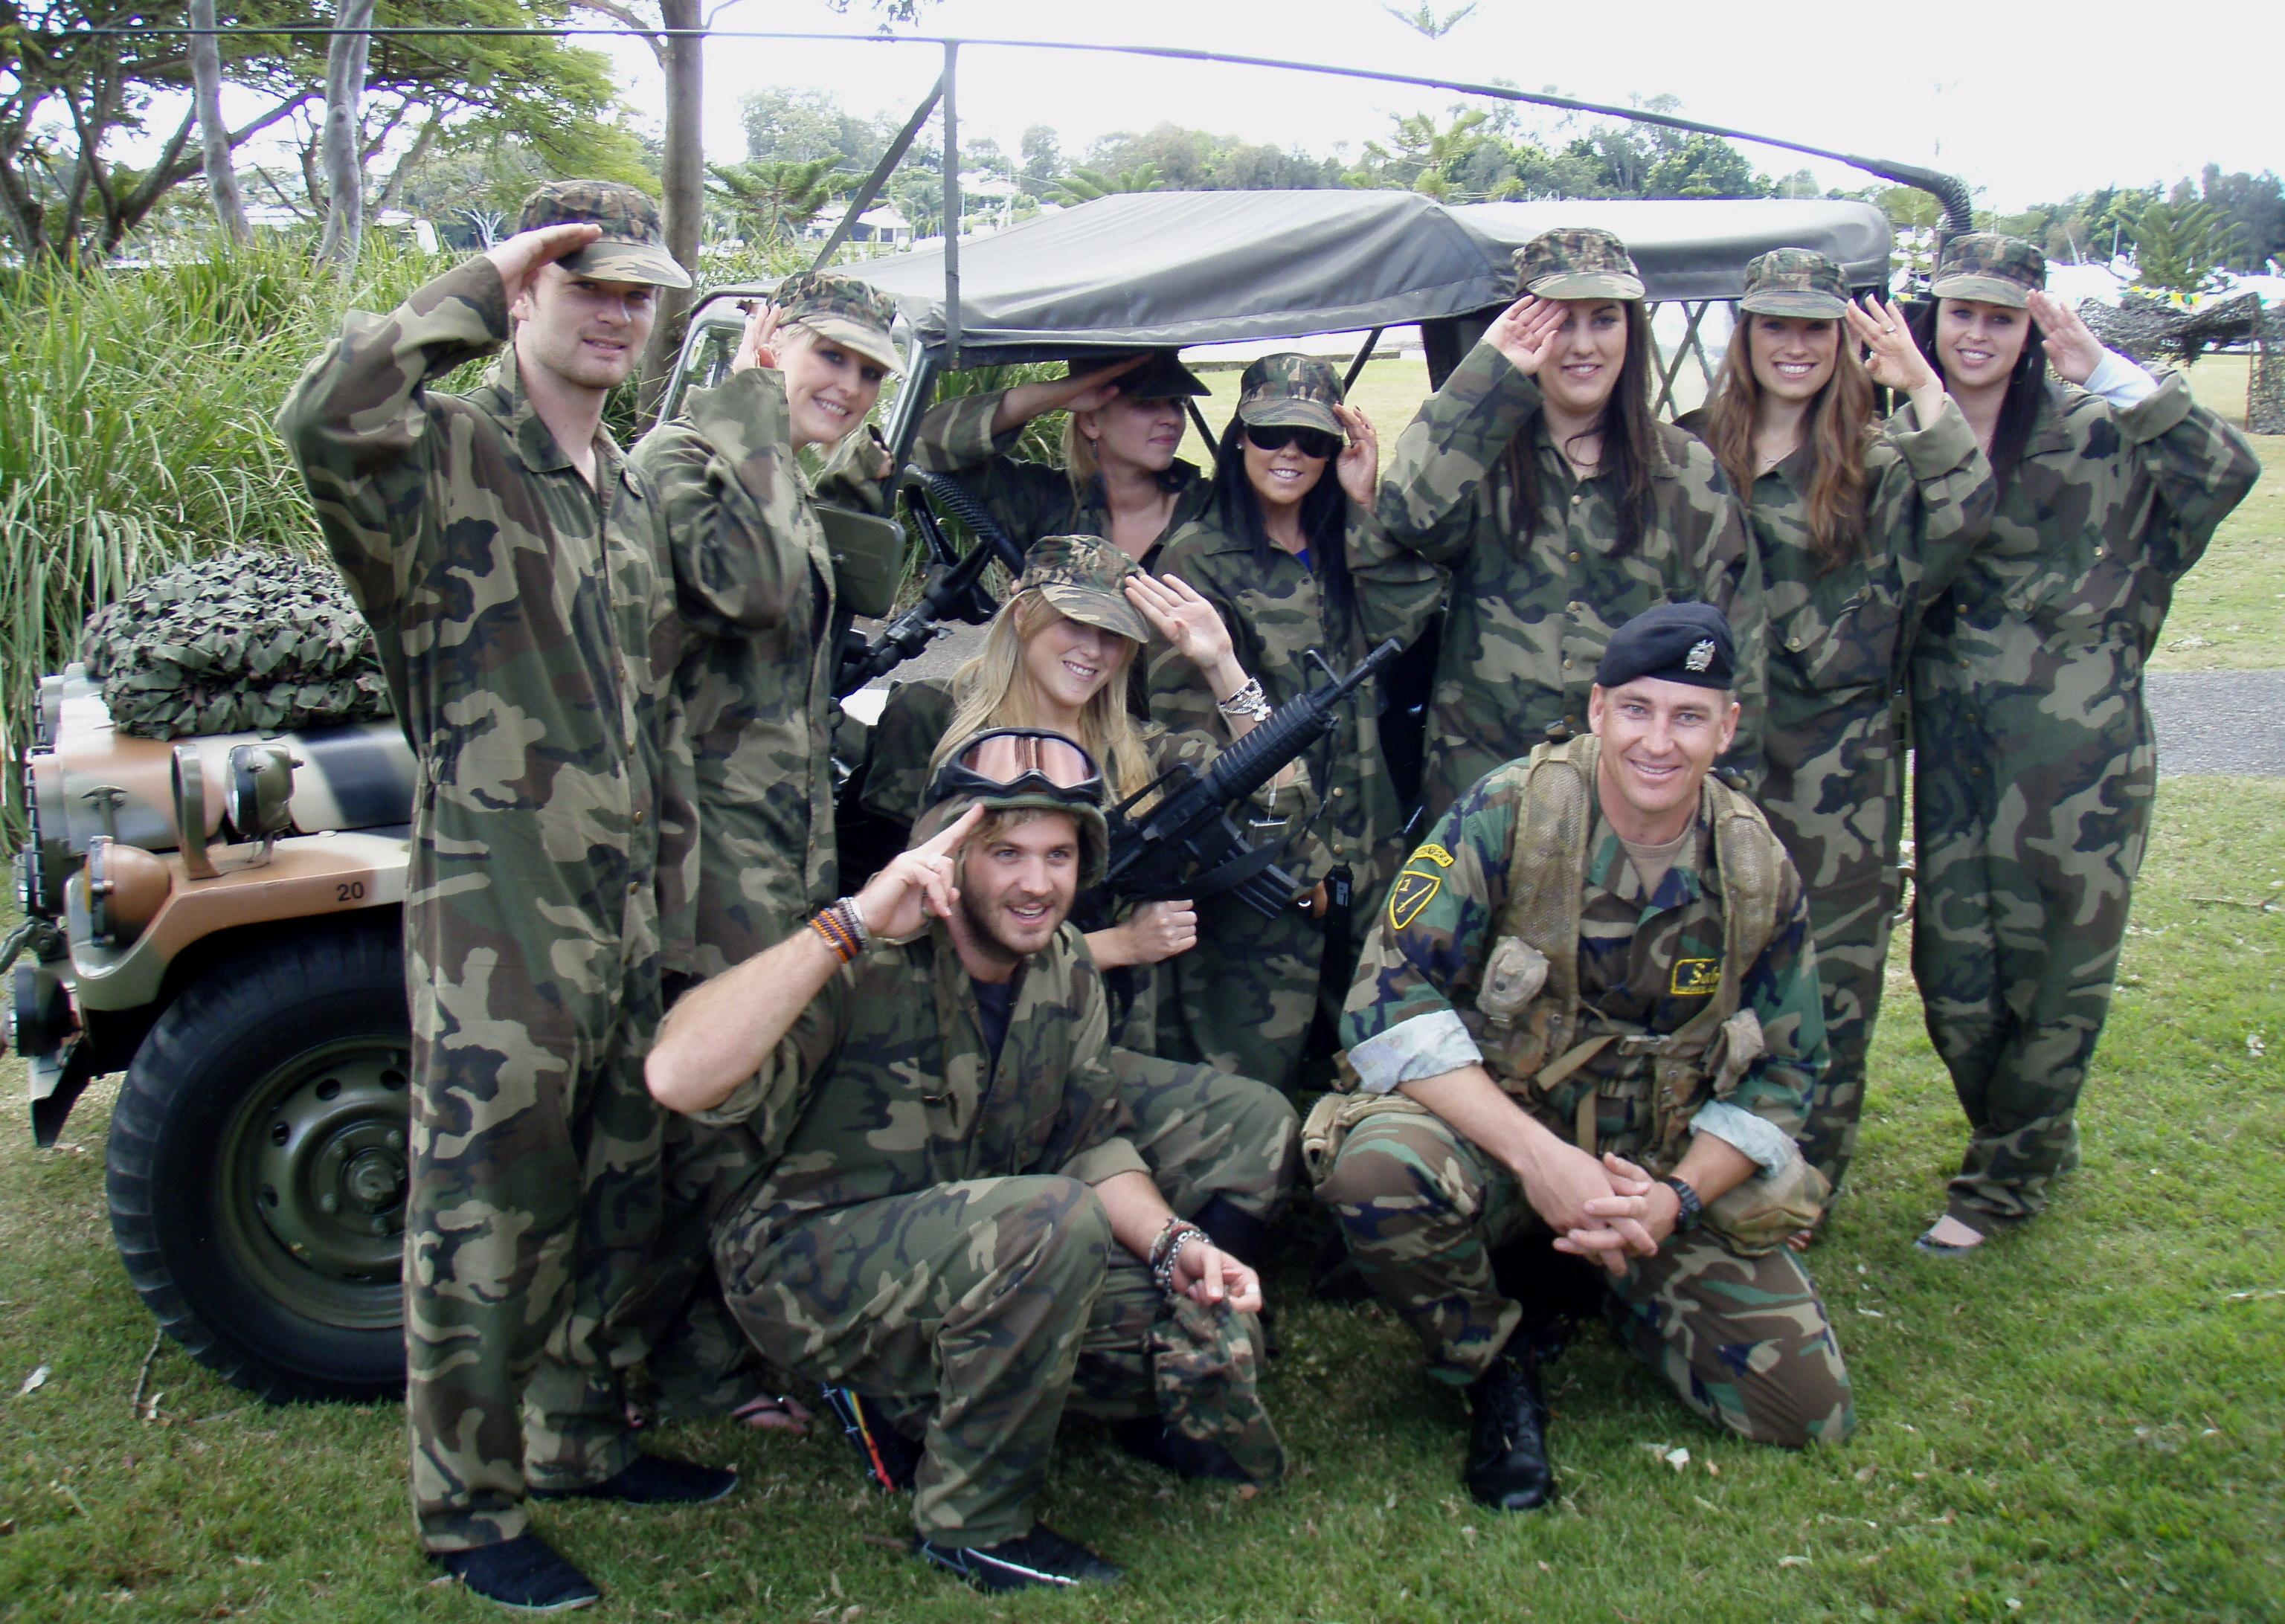 Military Themed Team Building